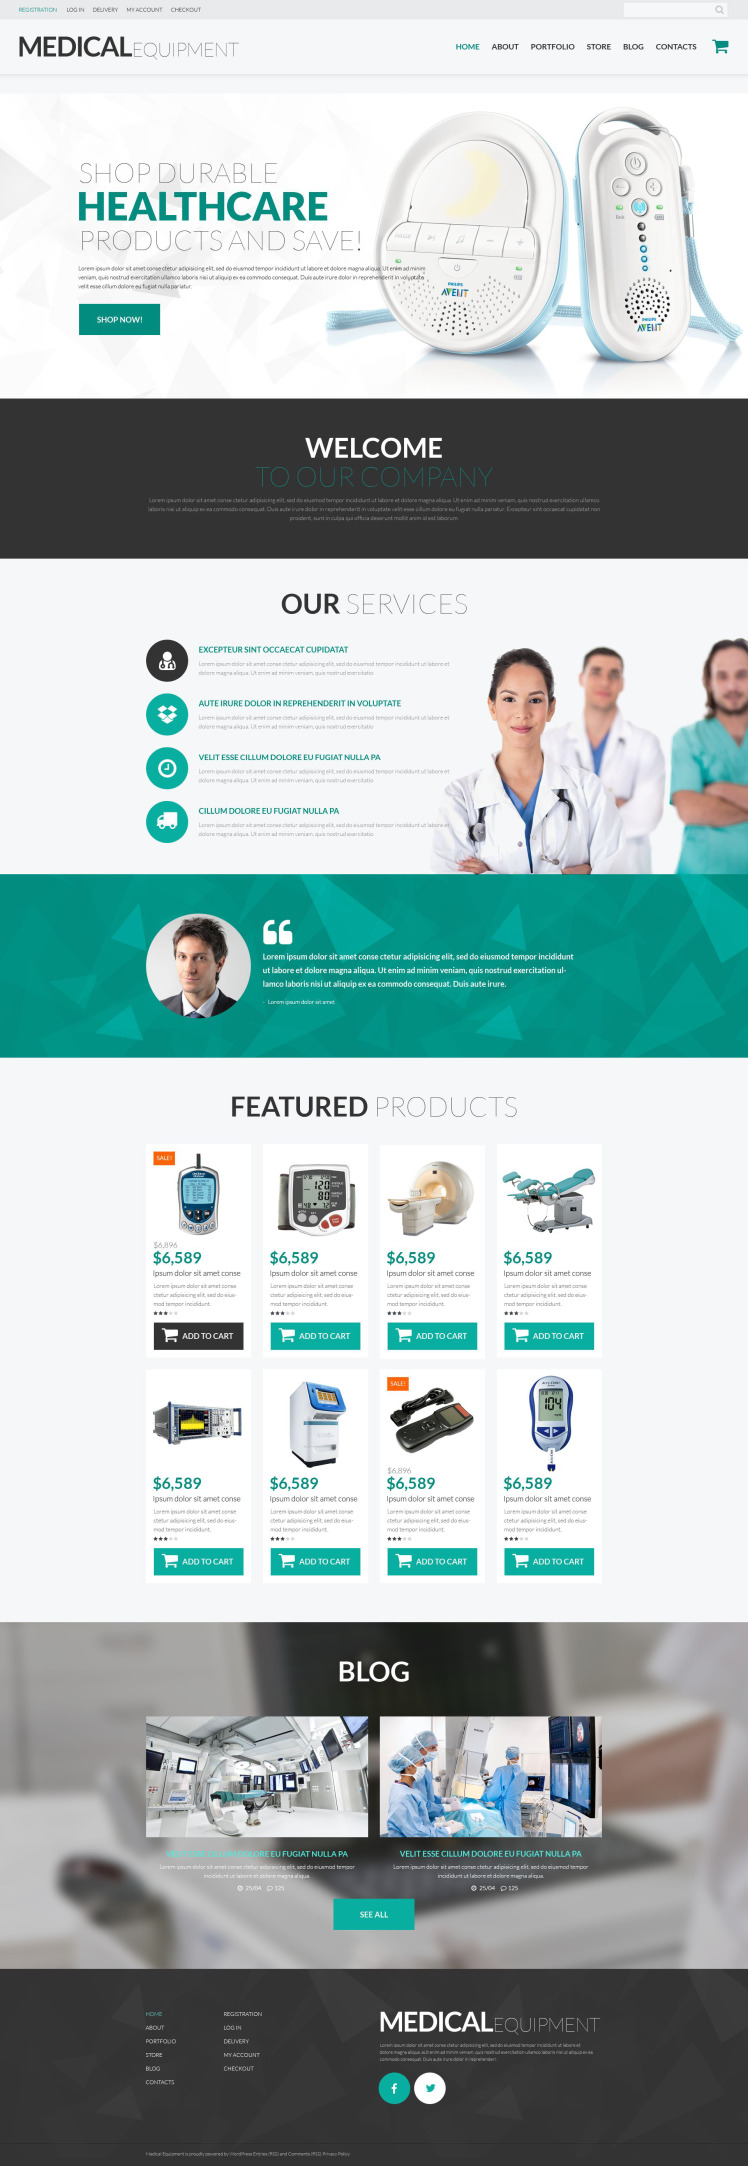 Medical Instruments WooCommerce Themes